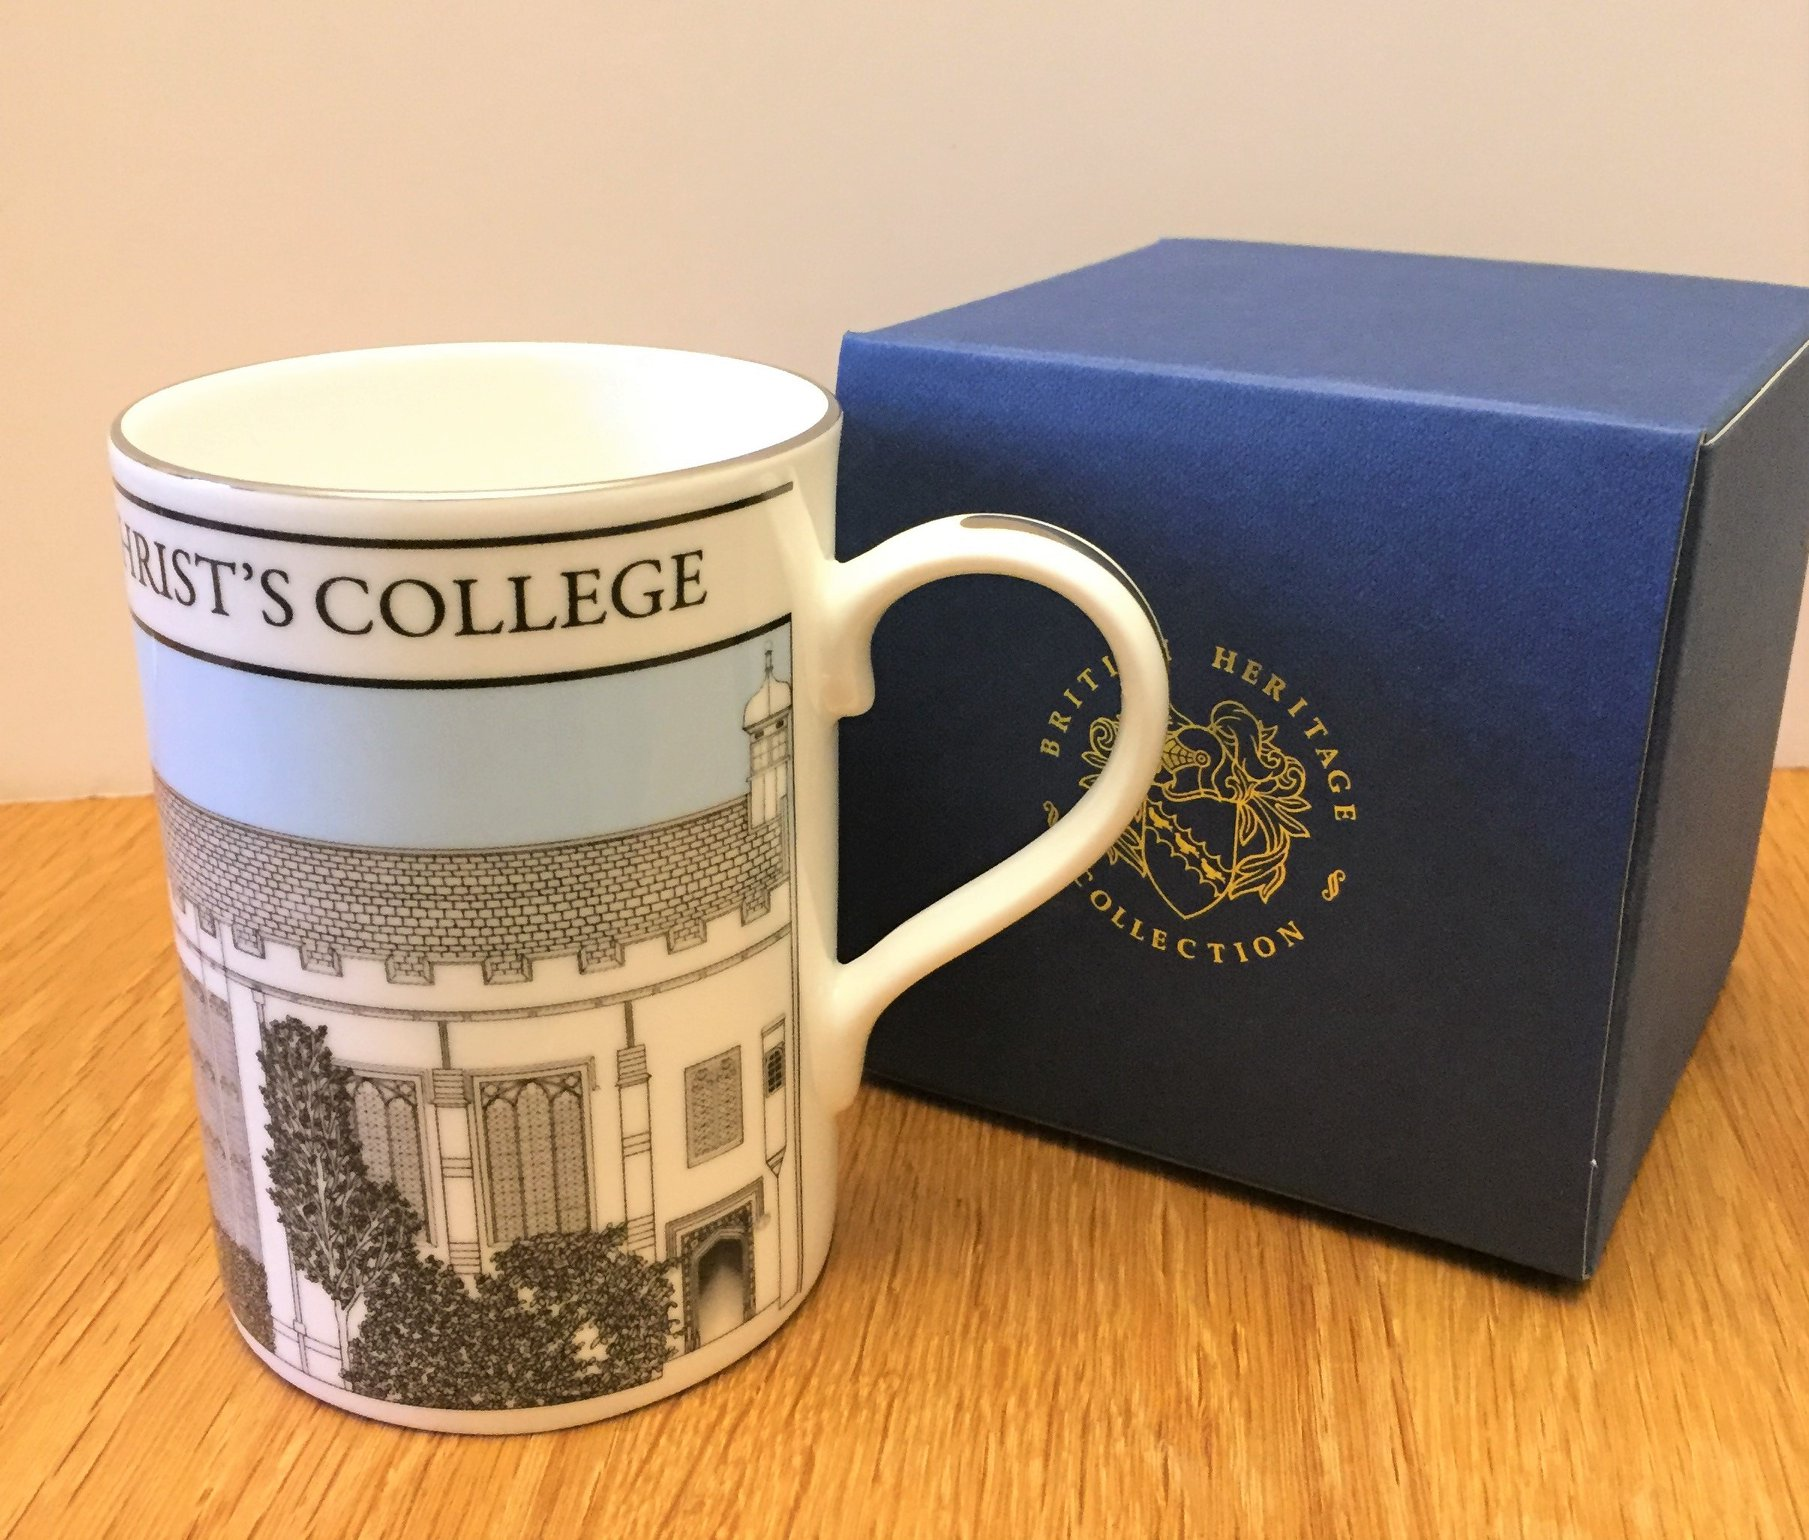 Christ's College mug and display box